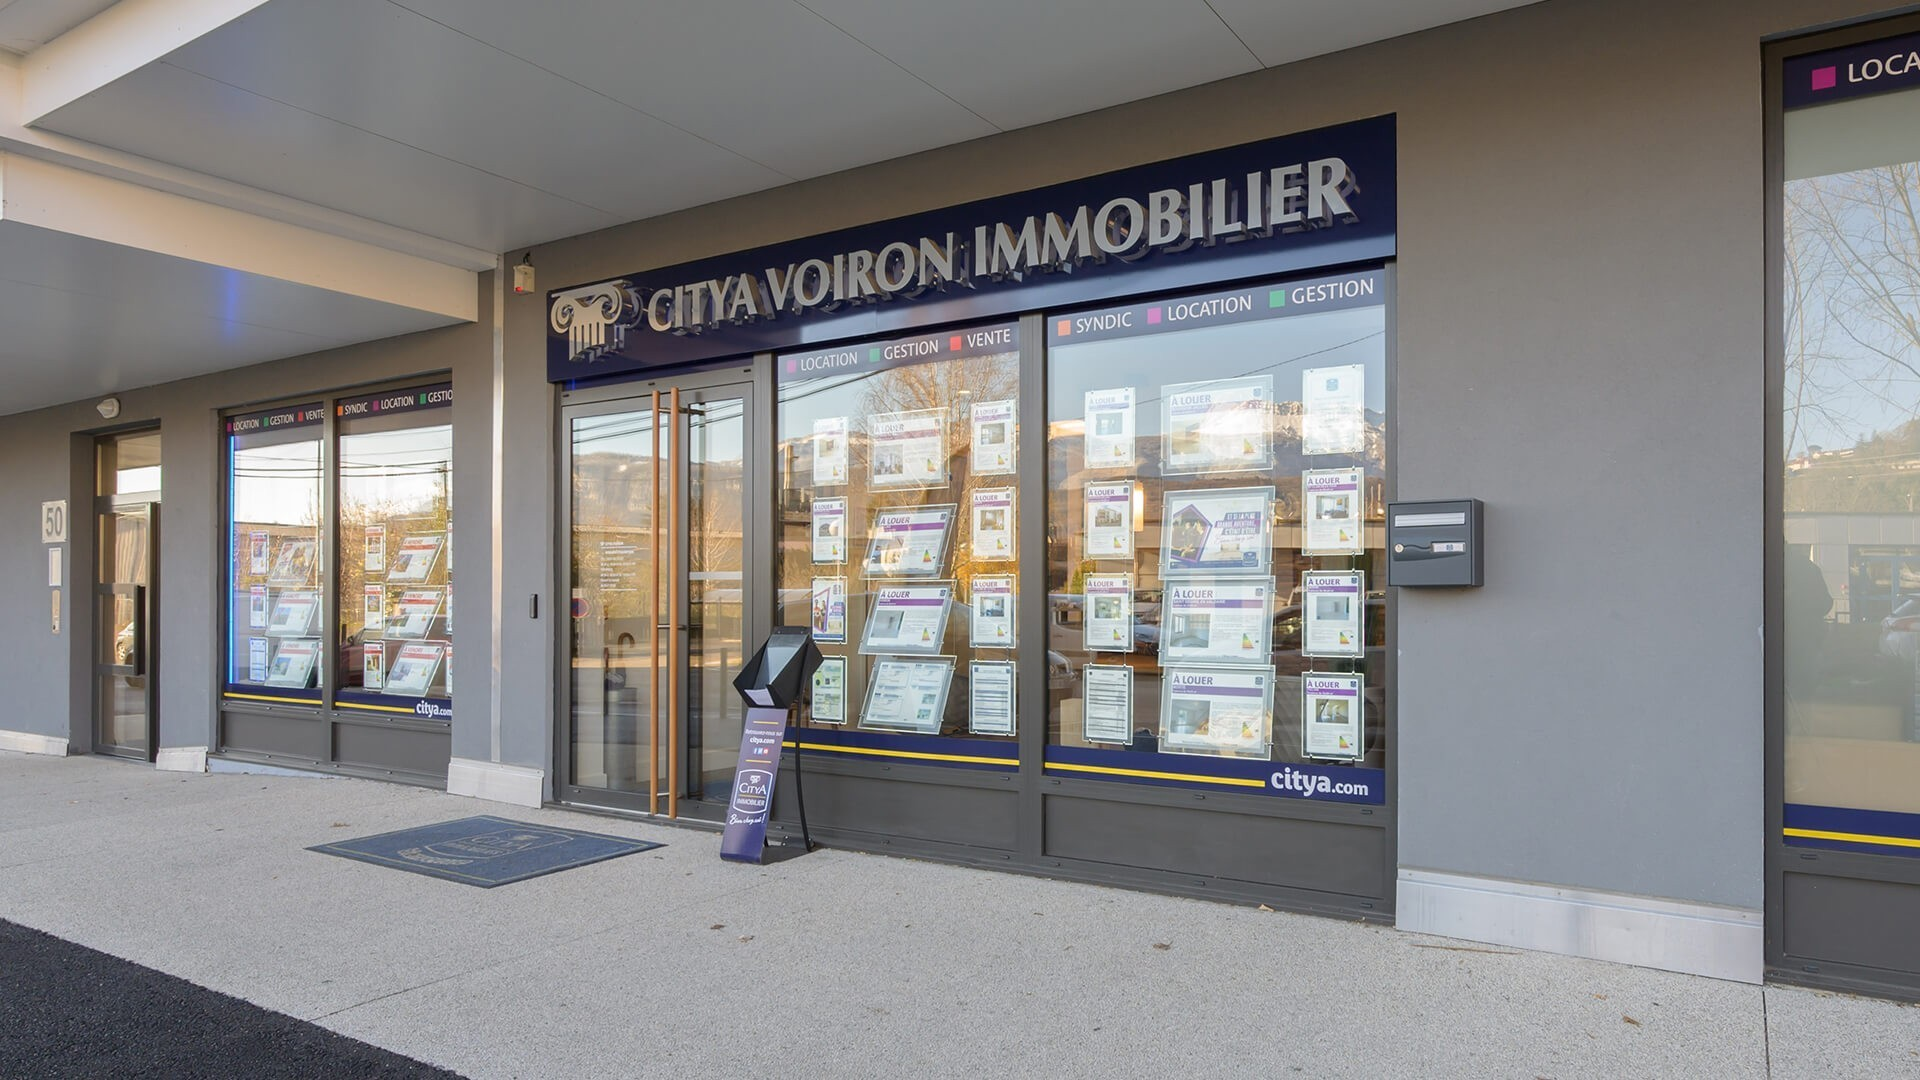 Agence immo Citya Voiron Immobilier